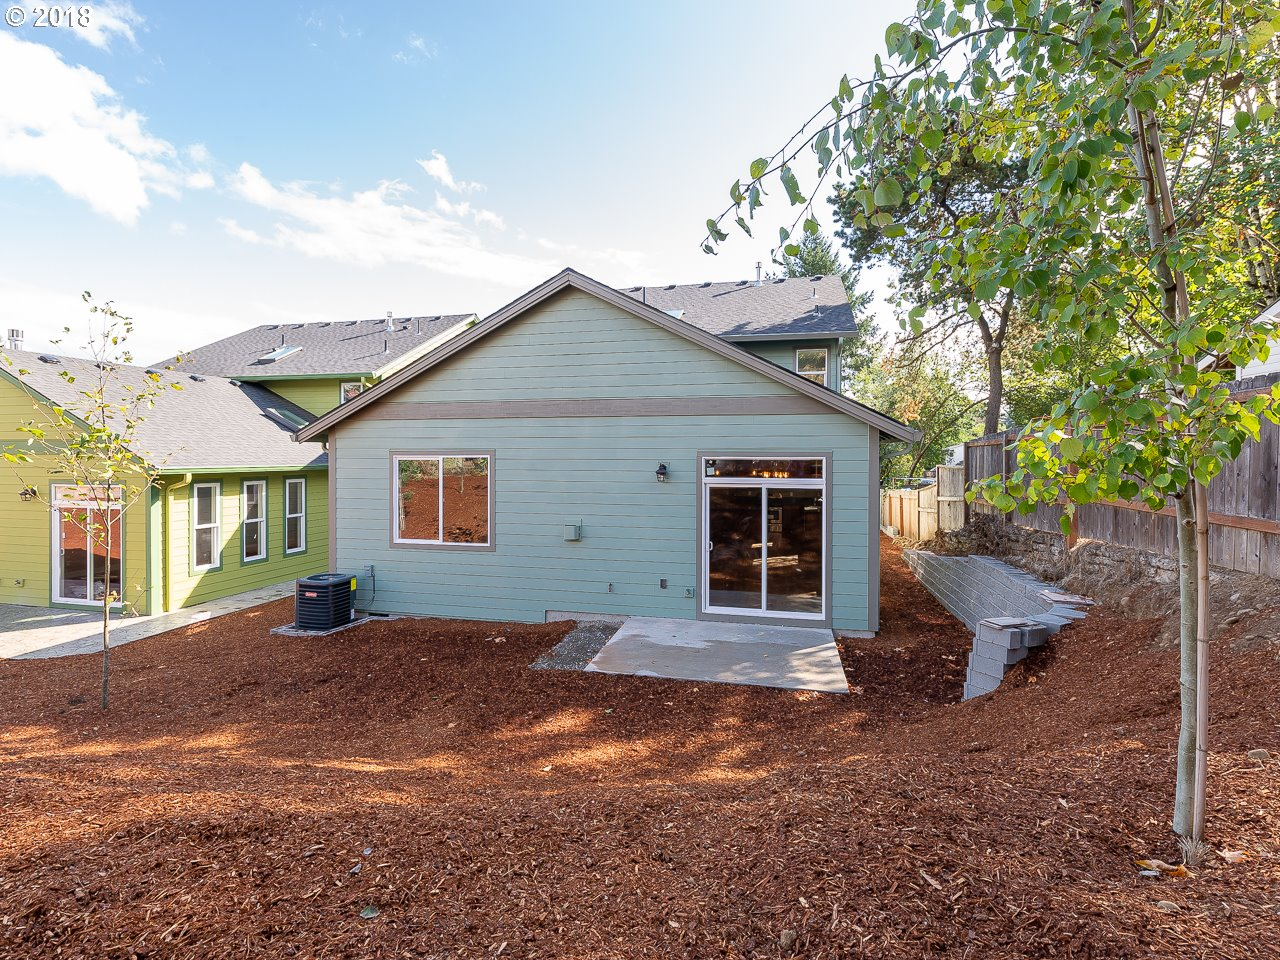 2481 sq. ft 4 bedrooms 2 bathrooms  House For Sale,Portland, OR